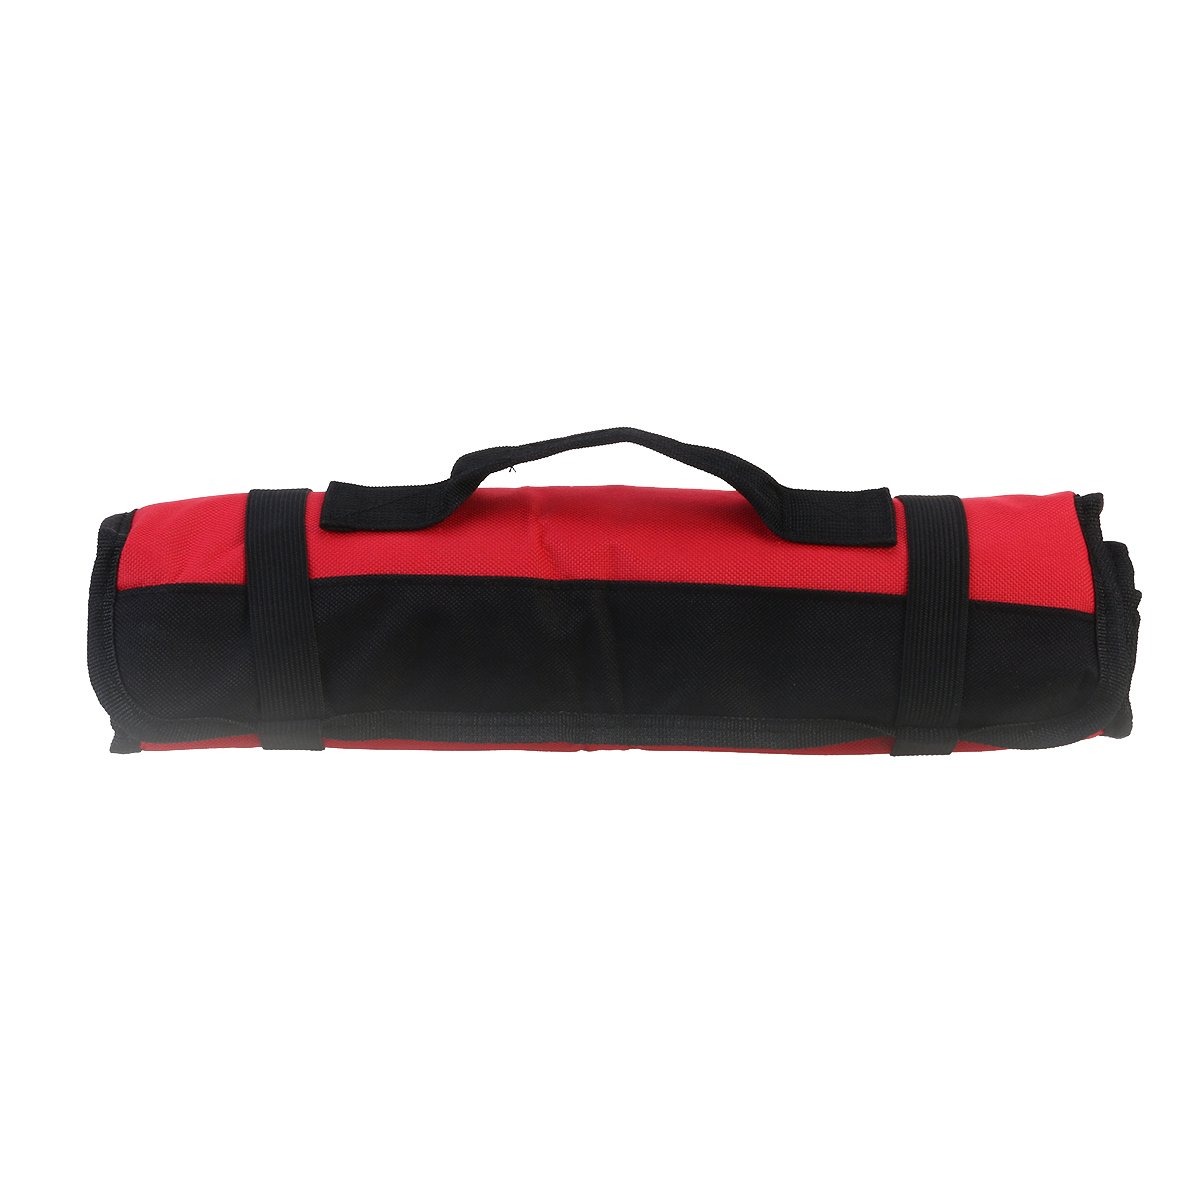 ROSENICE Wrench Roll Multi Purpose 22 Pocket Reel Rolling Tool Bag Red